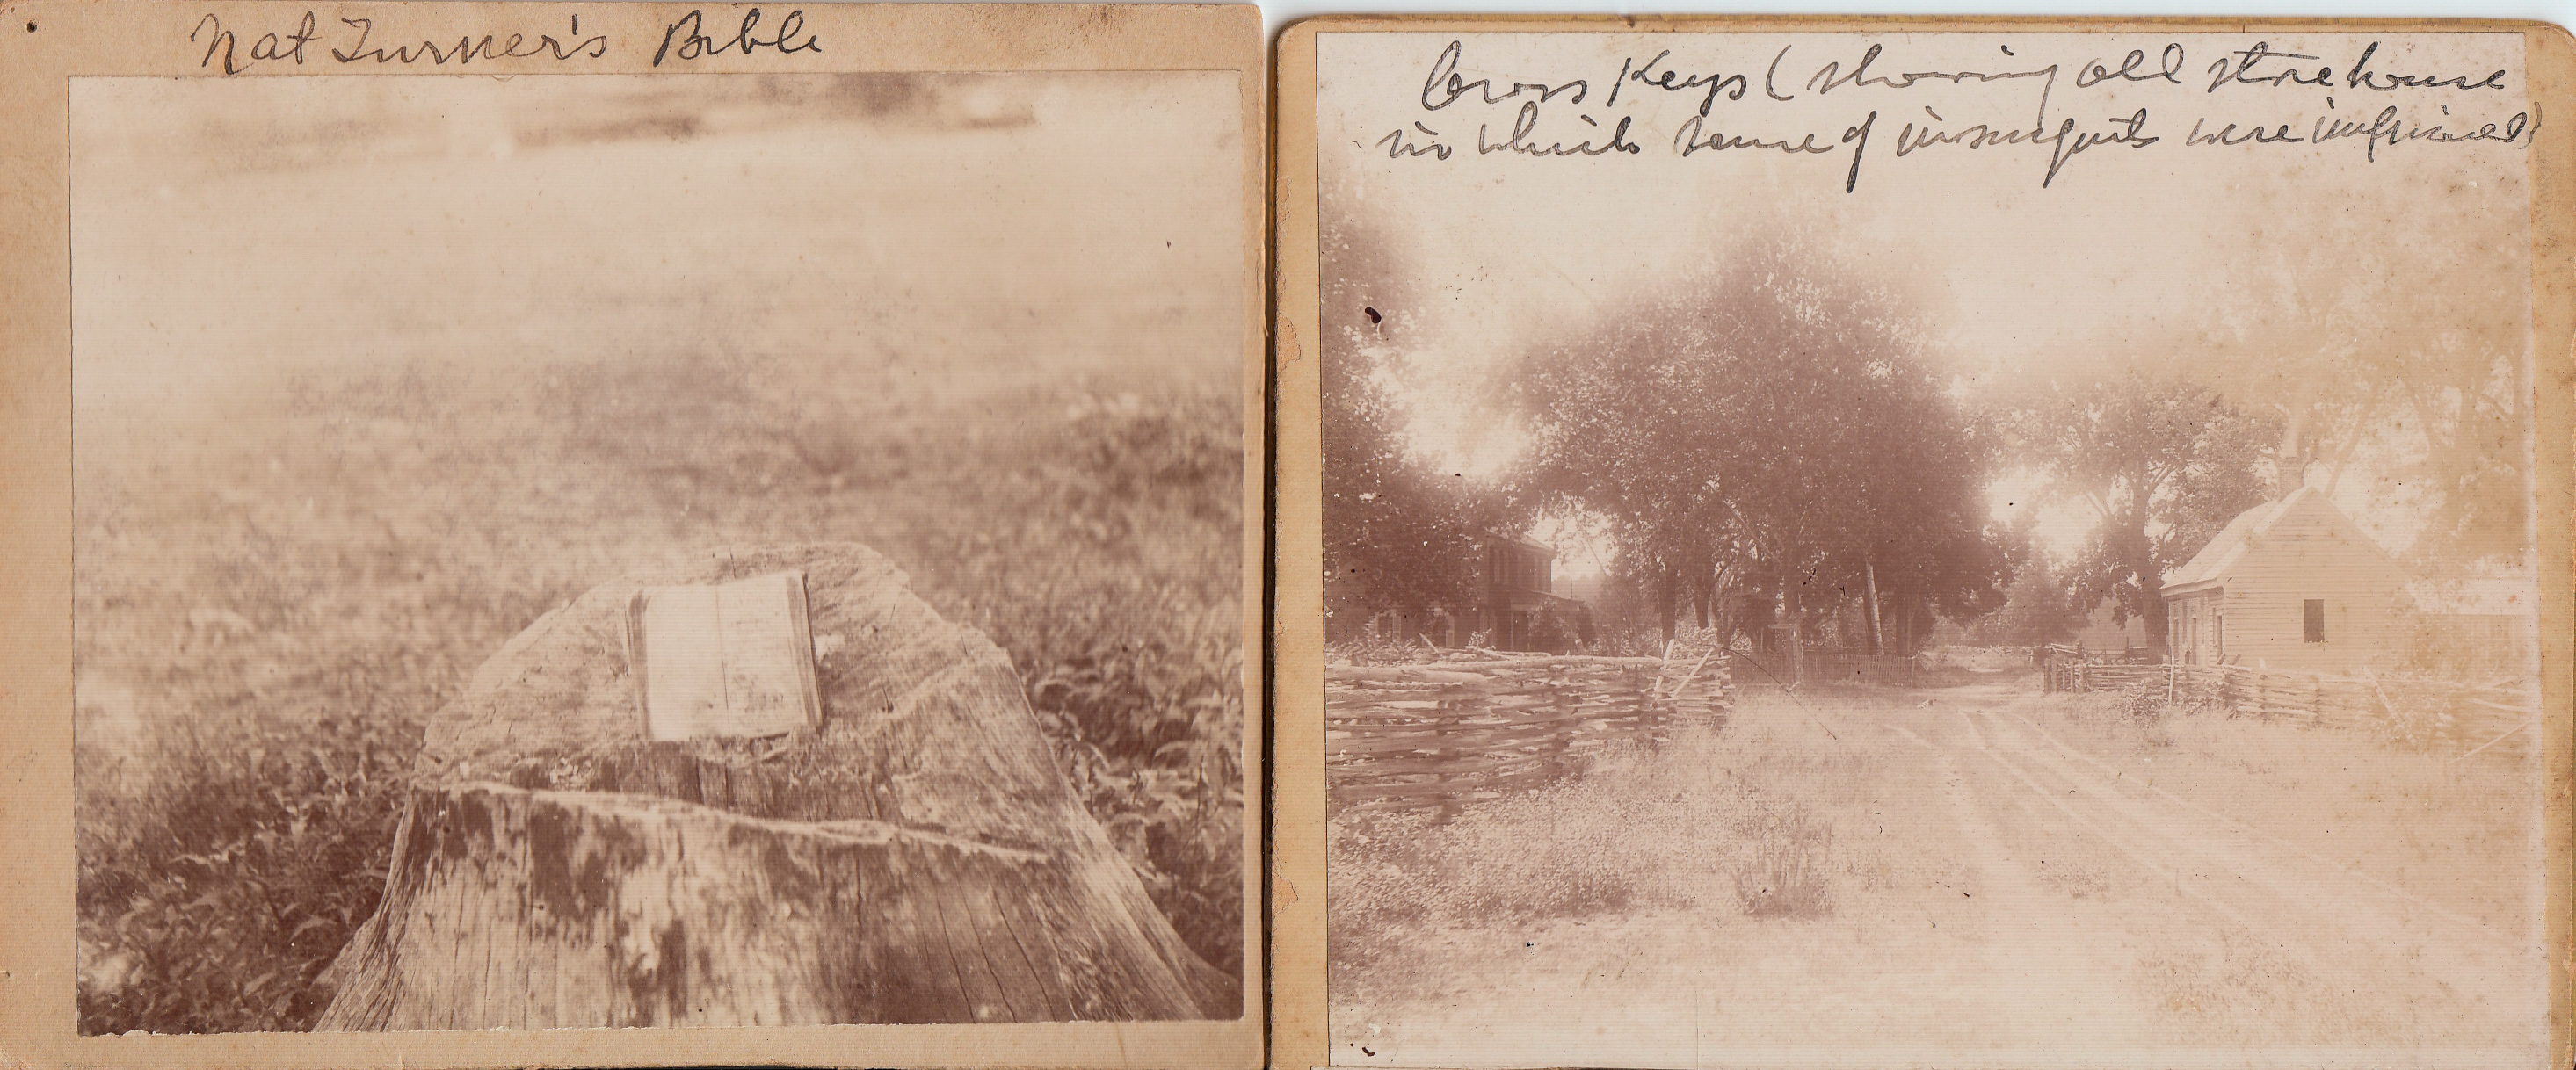 Photographs of Nat Turner's Bible and Cross Keys (showing old store house in which some of the insurgents were imprisoned), ca. 1900. (MSS 10673. Image by Petrina Jackson)